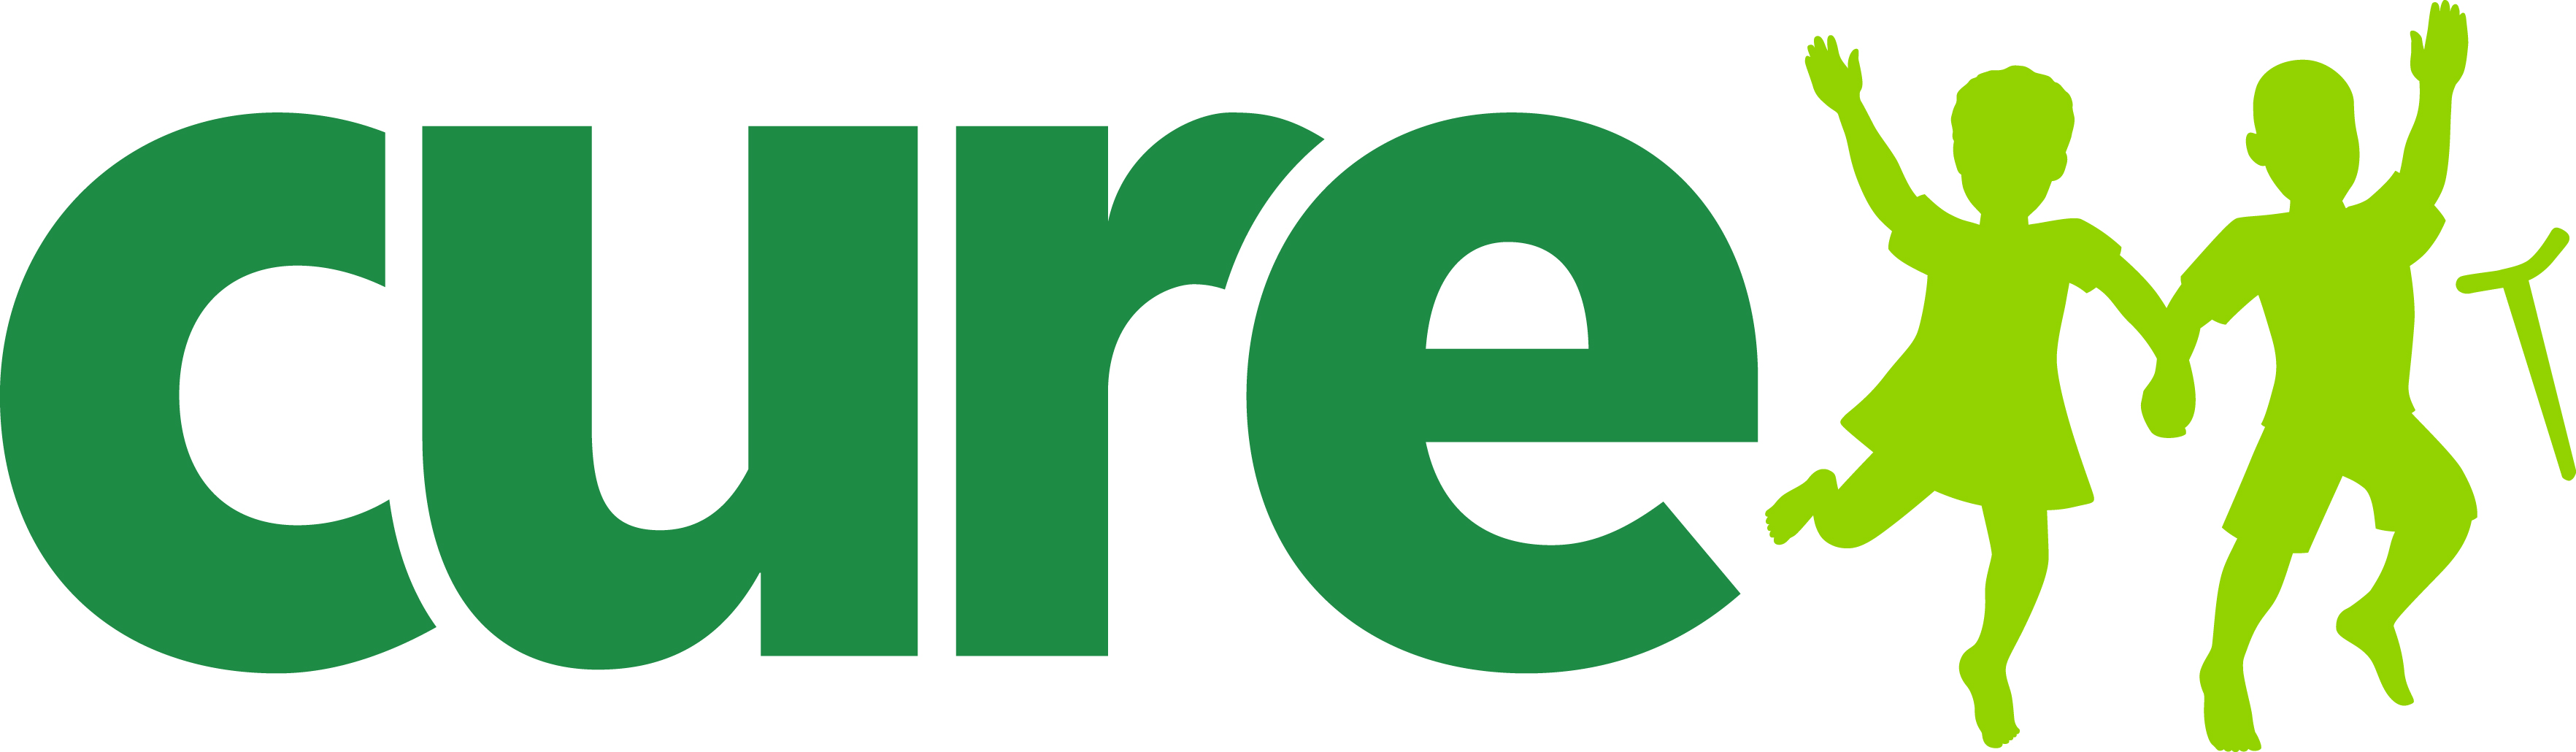 Cure international logo copy